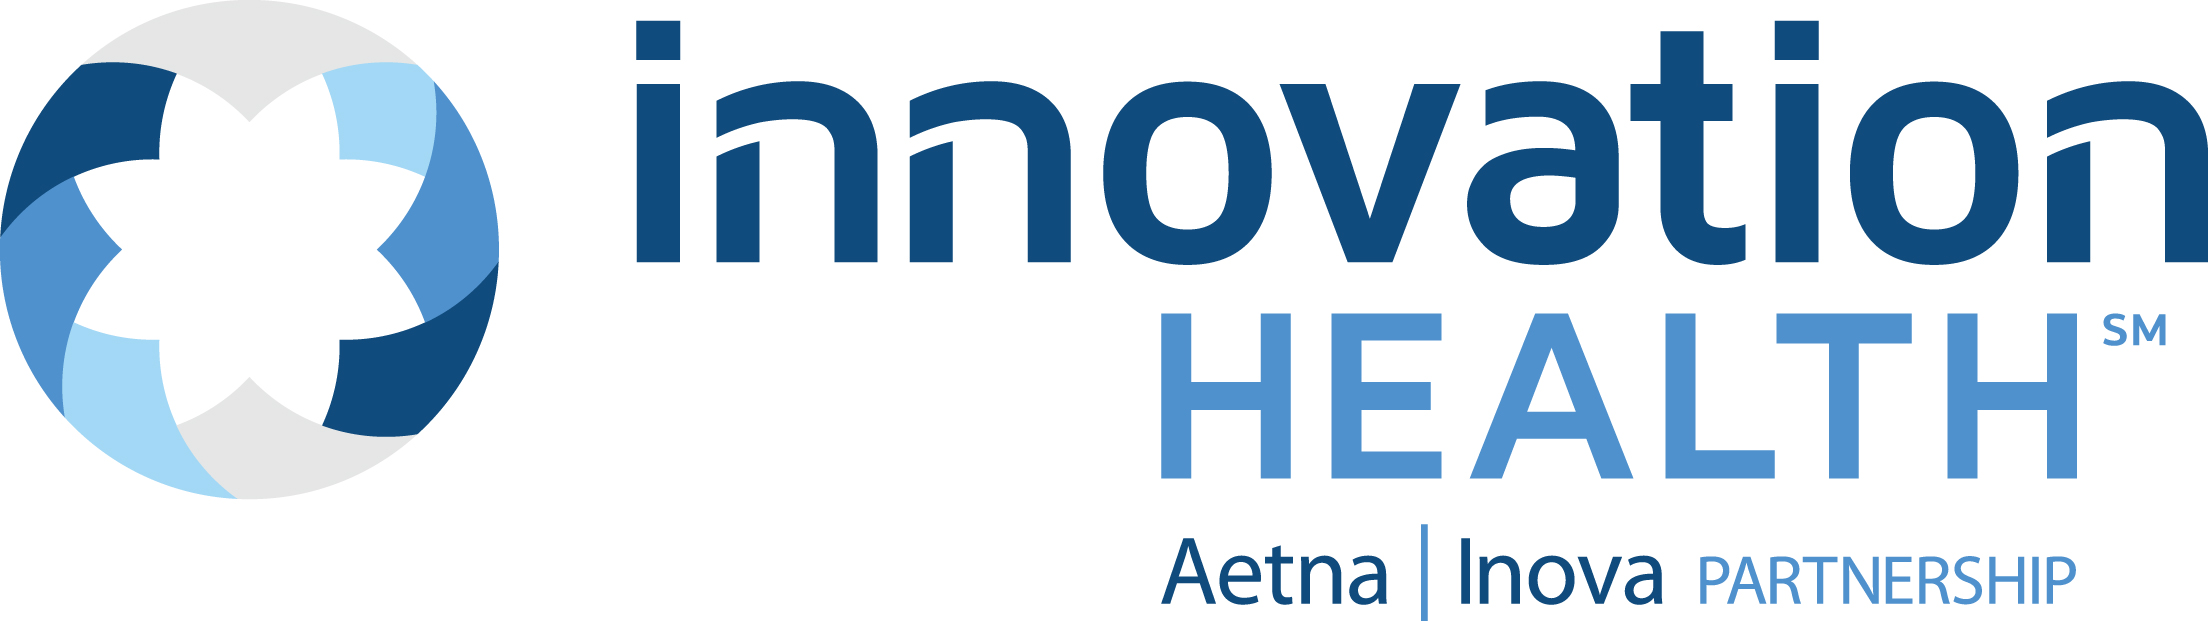 innovation-heath-logo-horz-PMS-Process-Flat